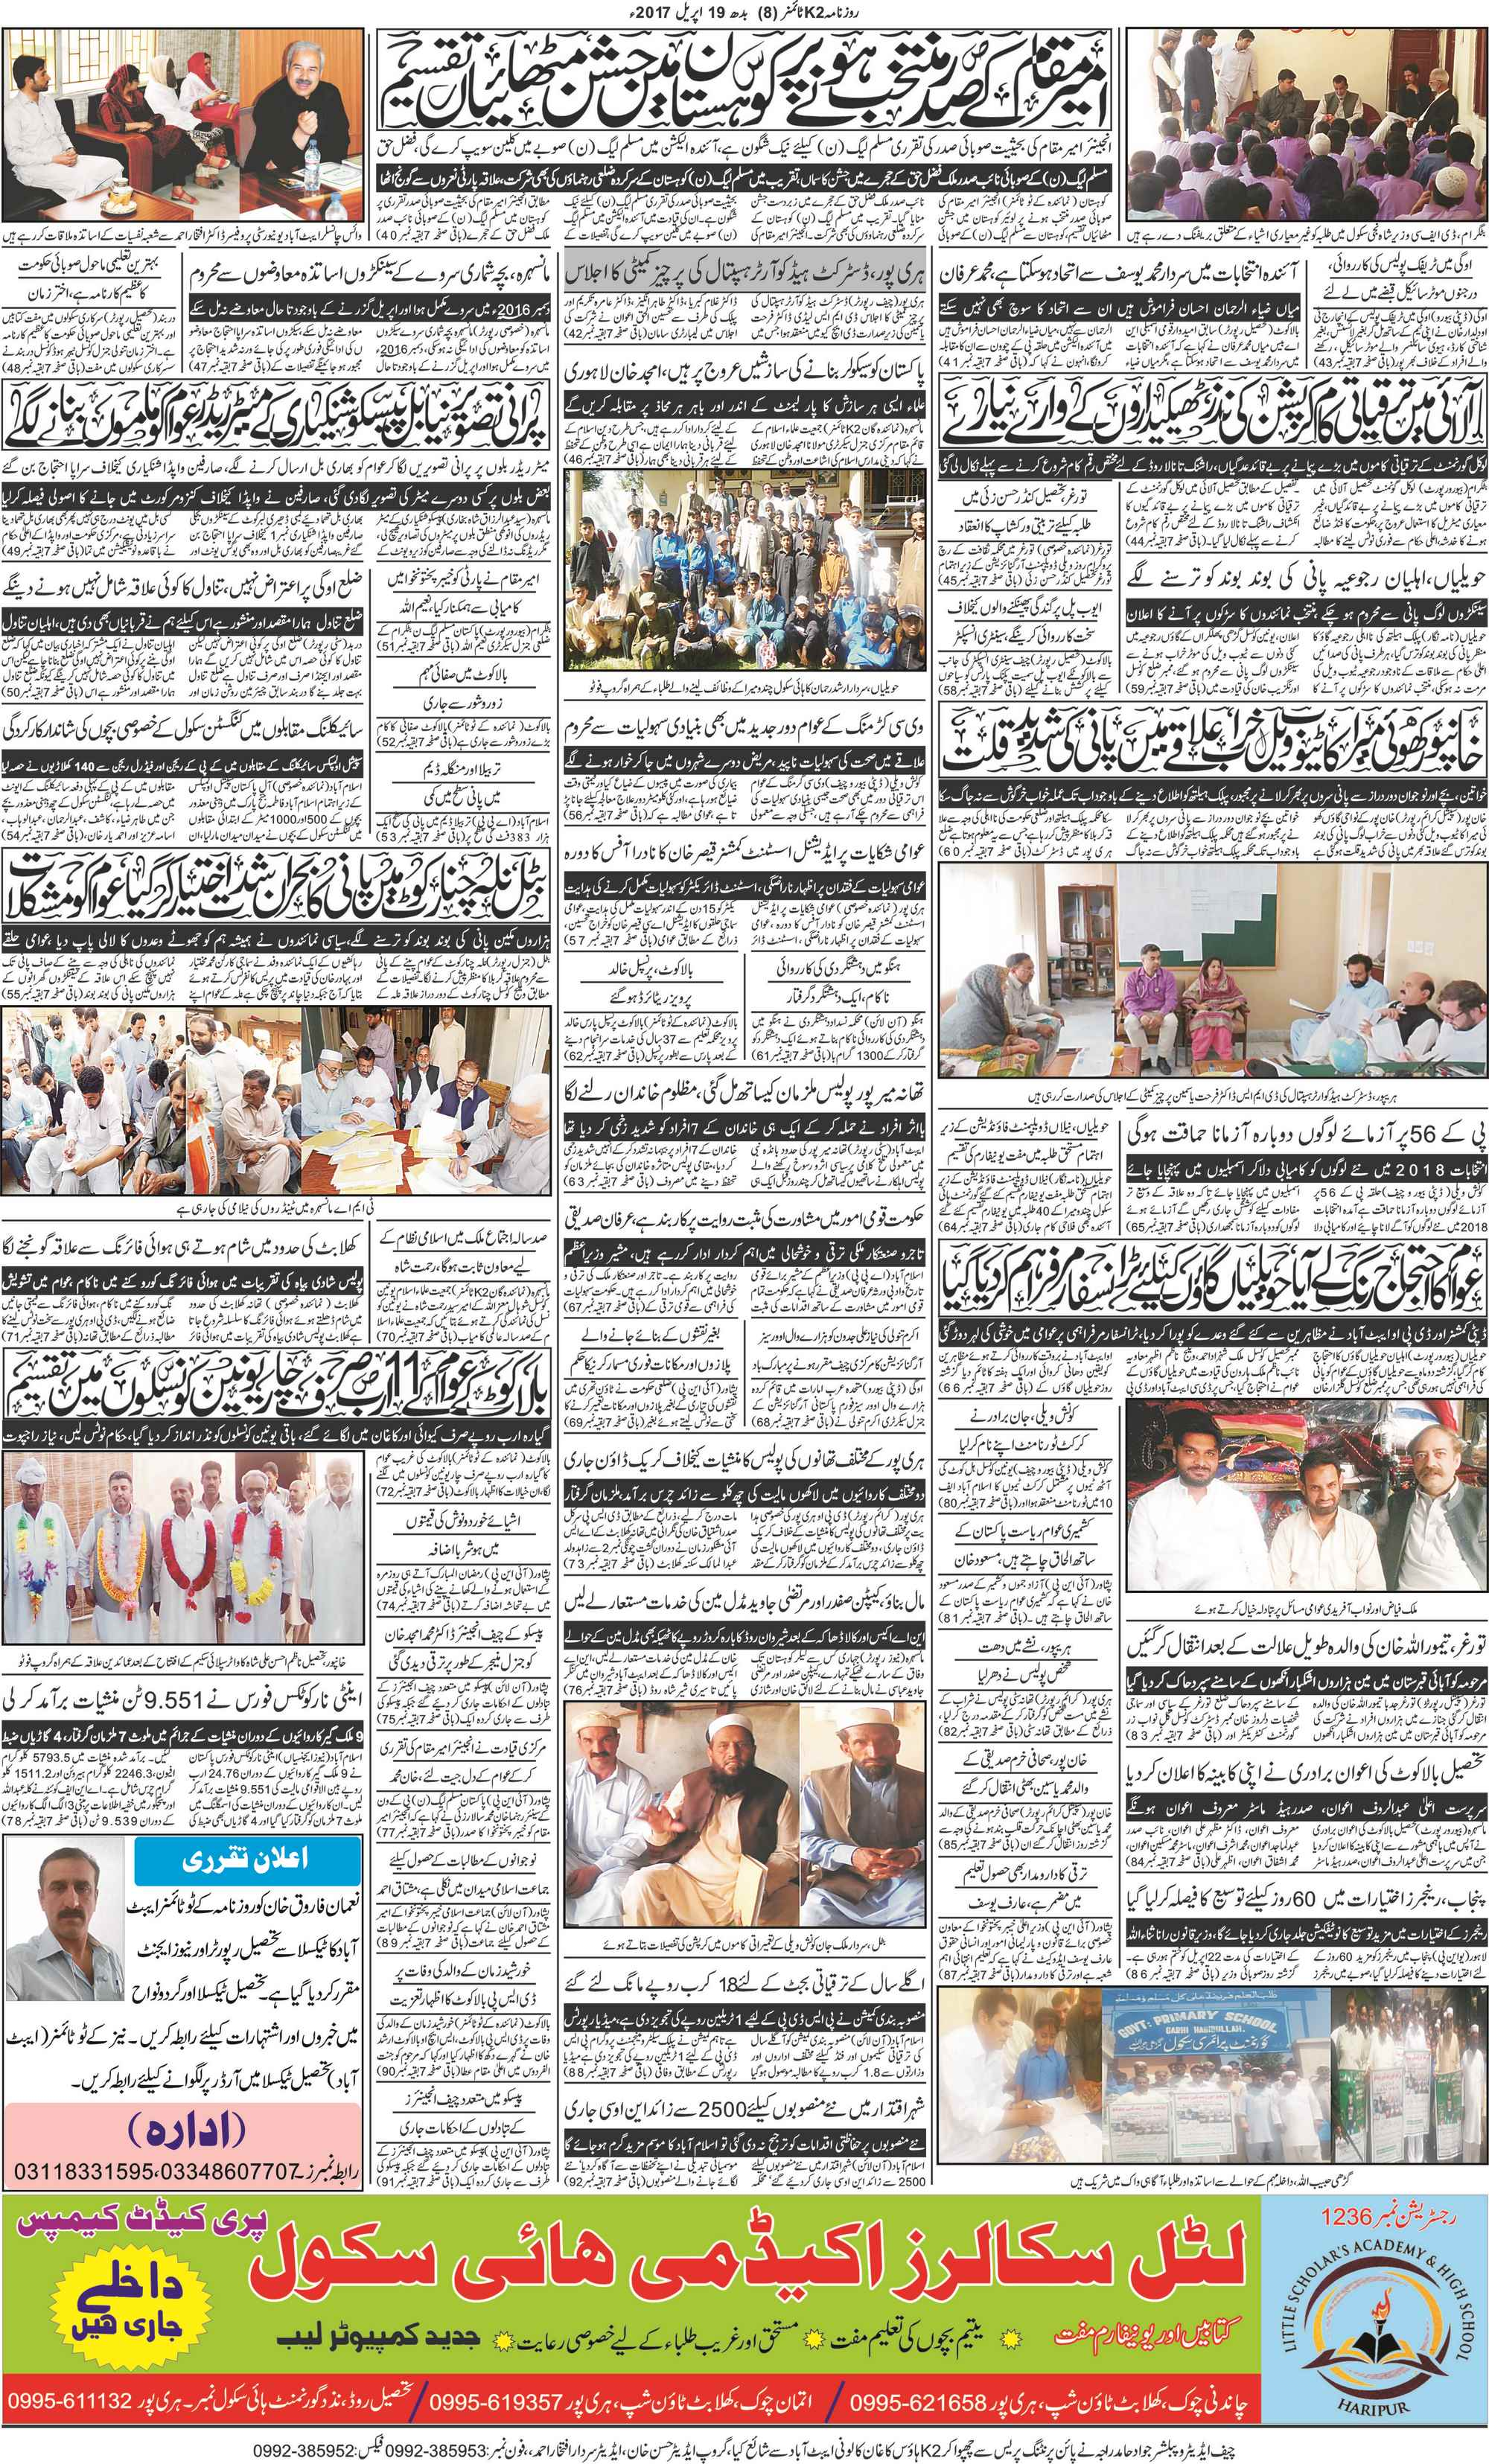 Thesis express news